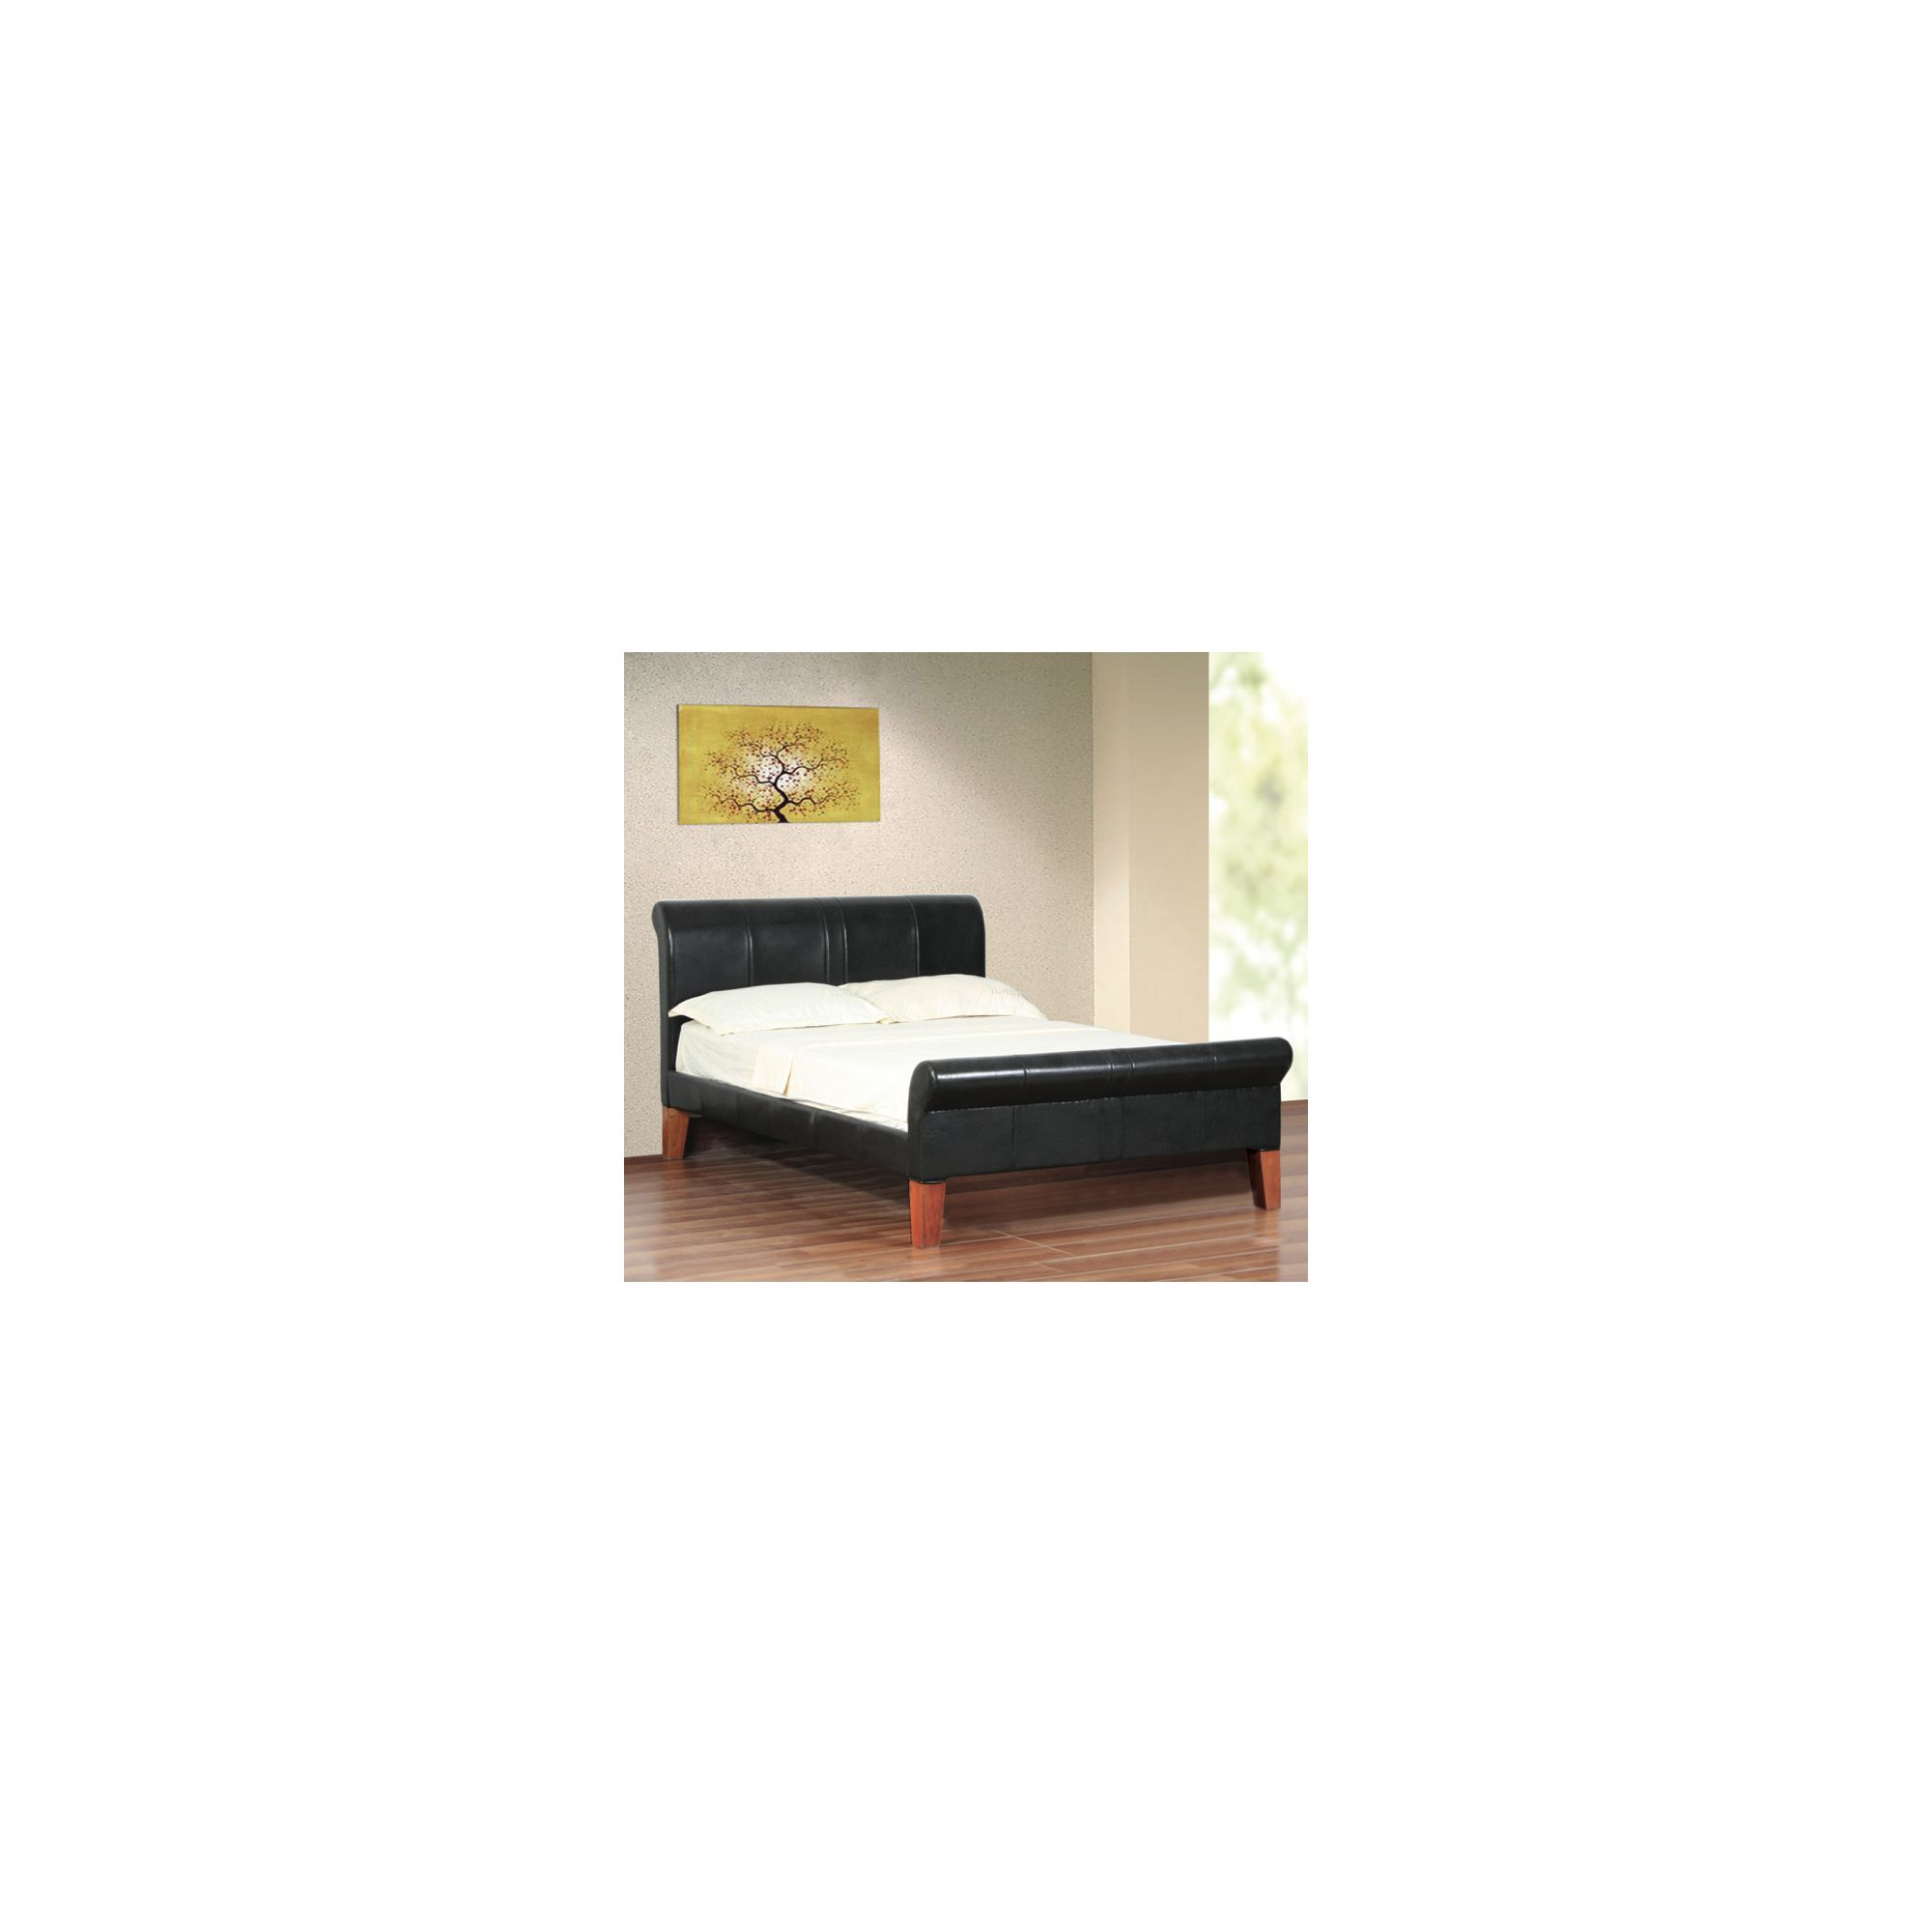 Elements Ottowa Bed - King - Black at Tesco Direct